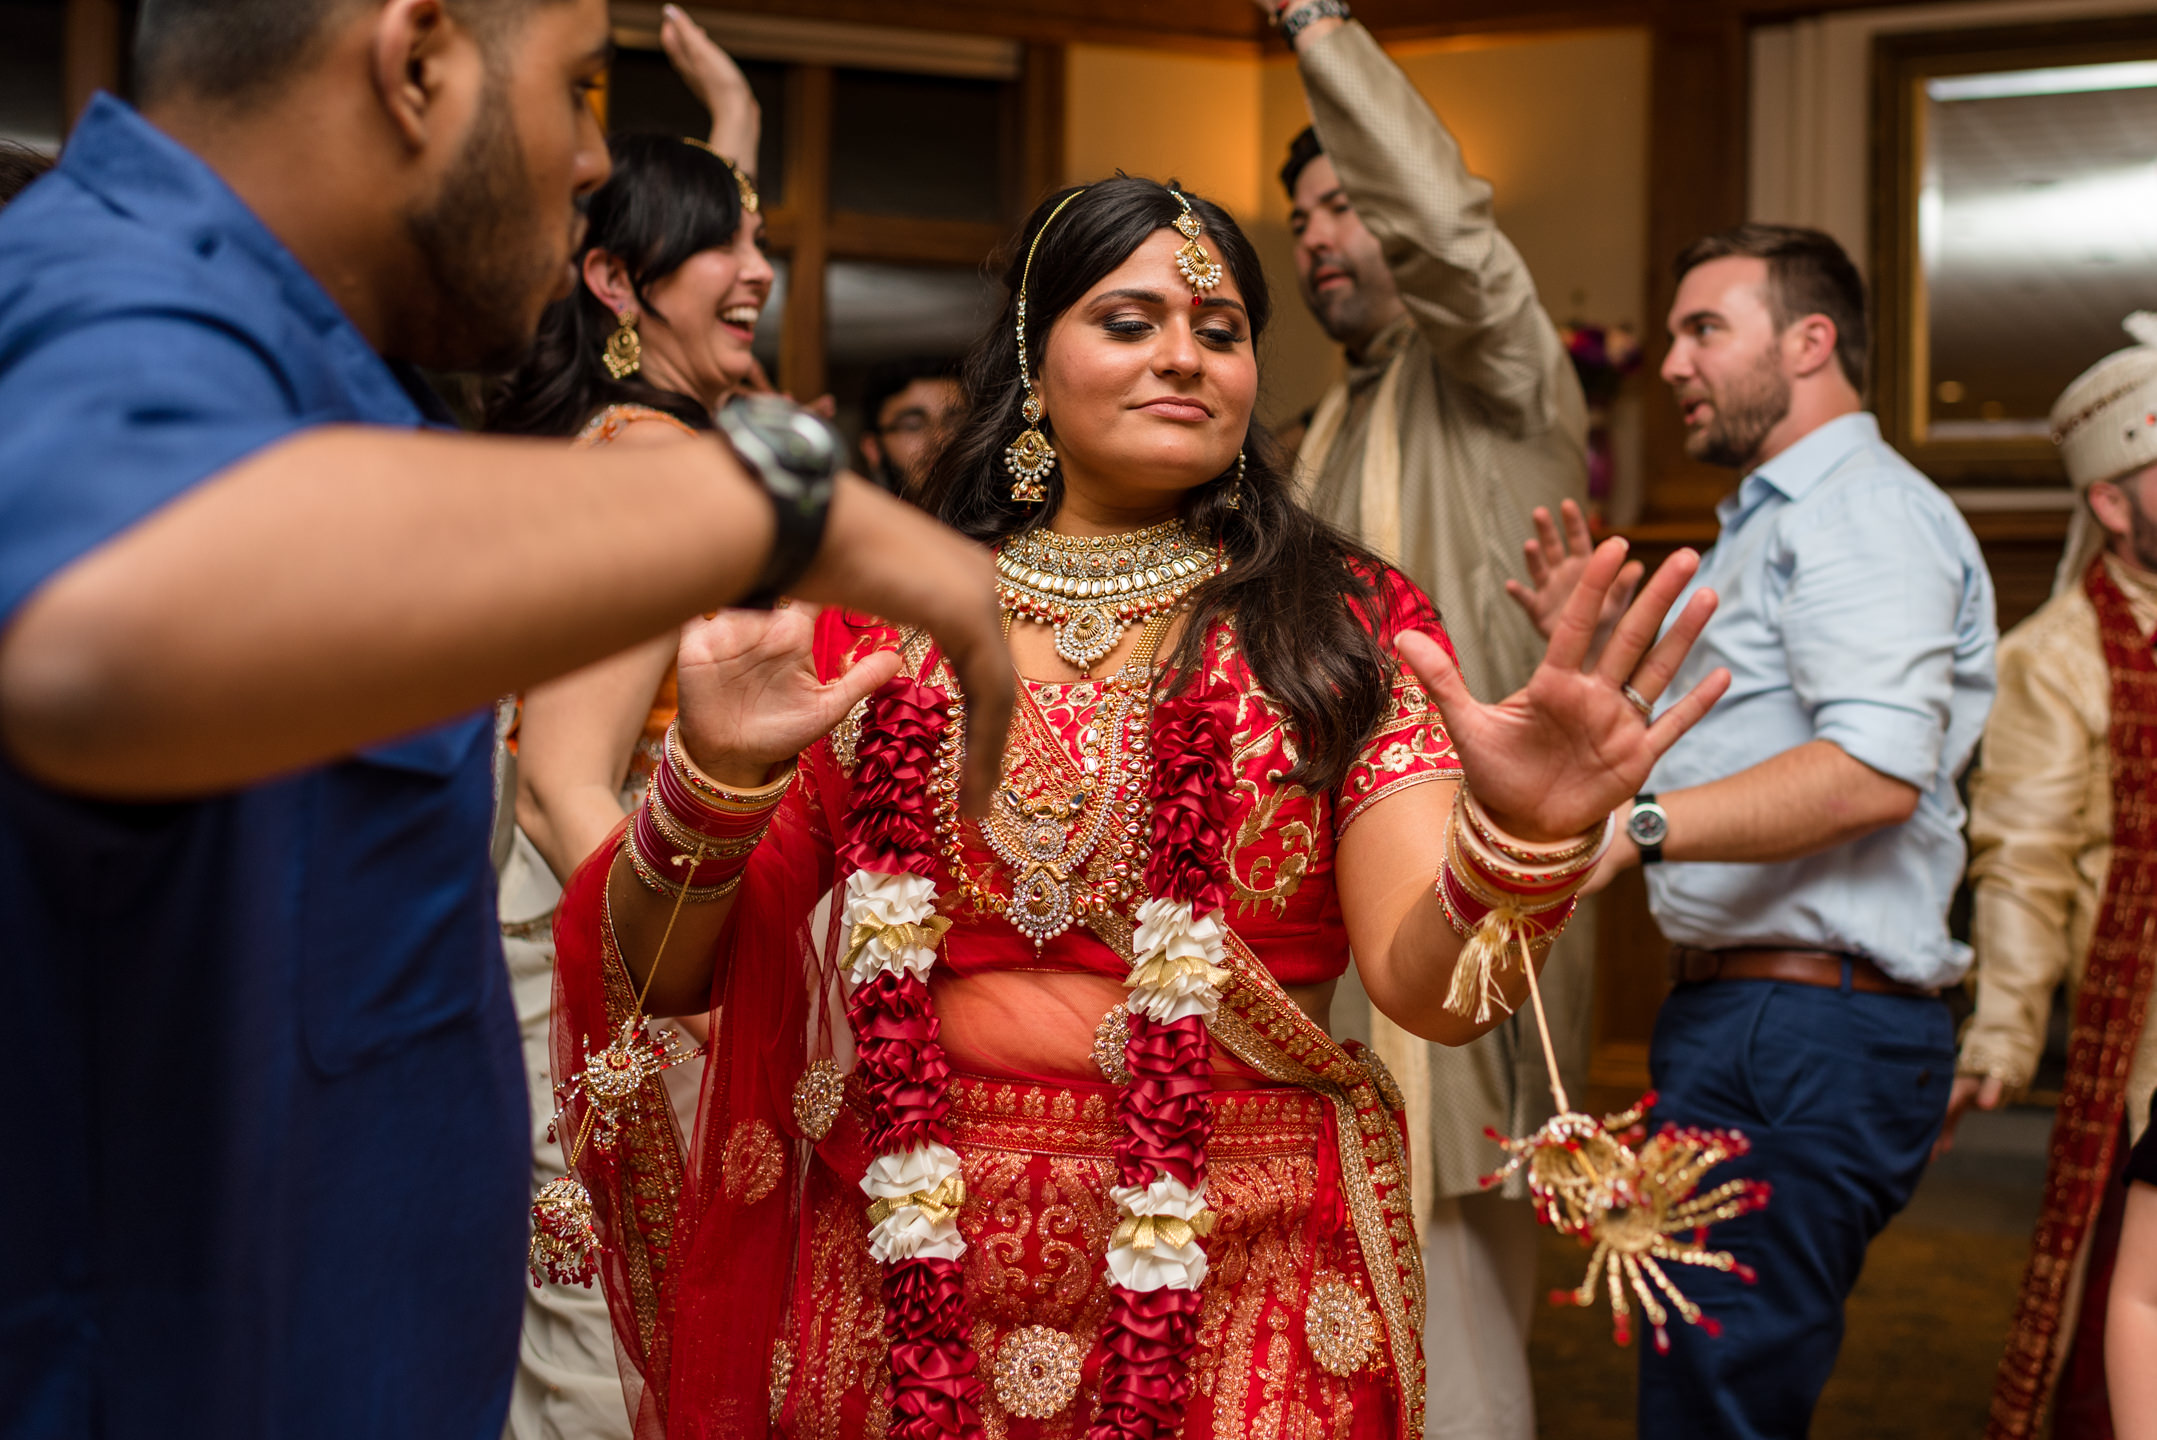 August 27, 2017 -- Andrew Tat Anita and Corey -- Country Club, Echo Falls, Golf Course, Snohomish, washington, Washington State, documentary, editorial, indian, asian, weddings - 0001.jpg